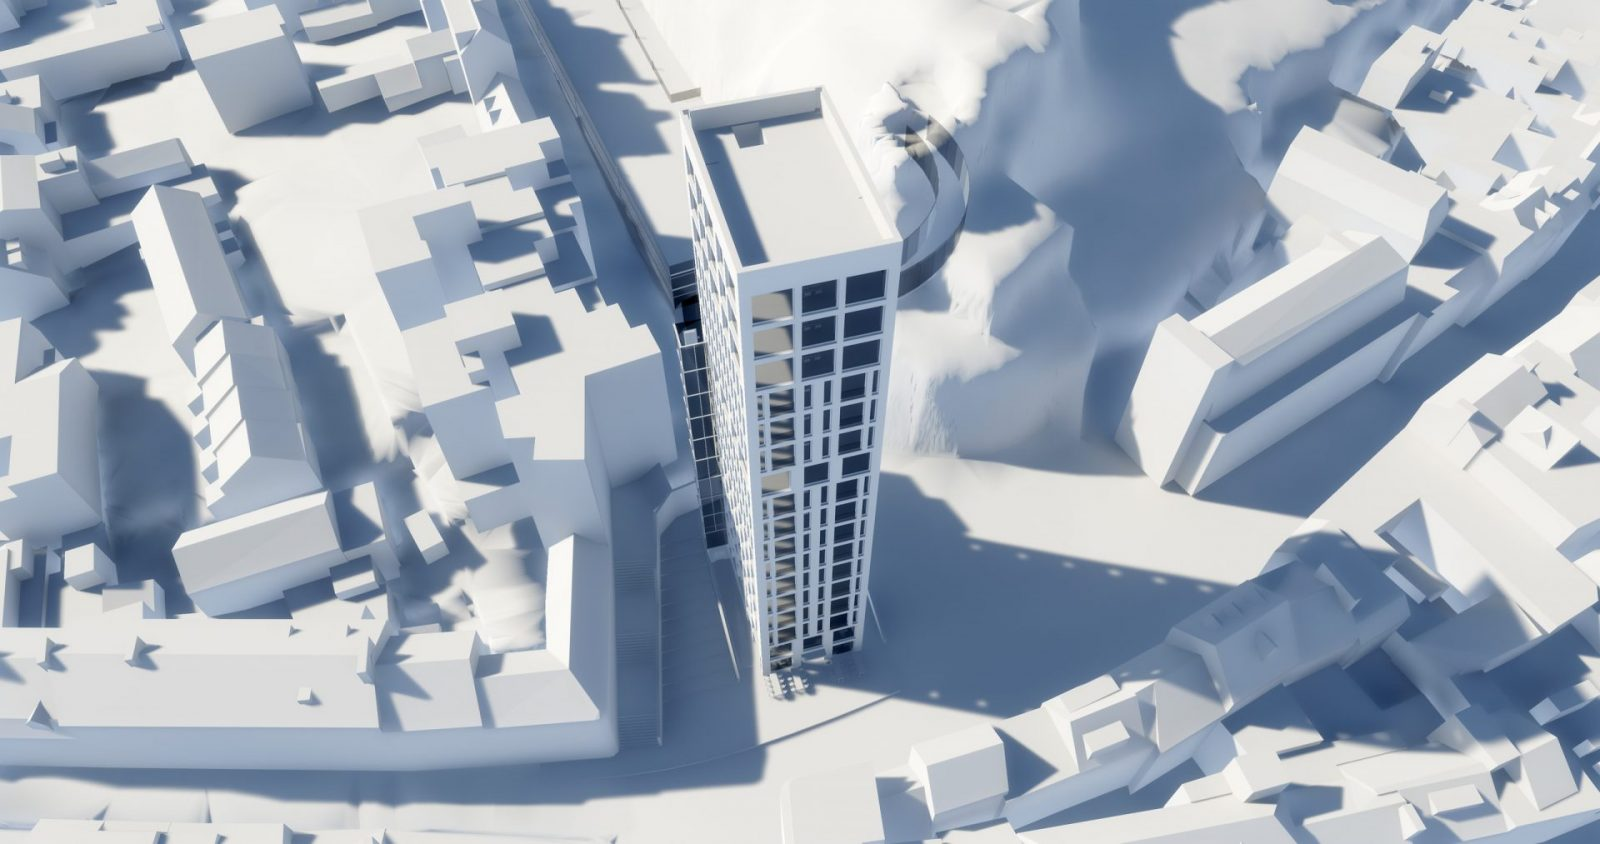 snow hill tower st helier apartment building architecture architects jersey architects1